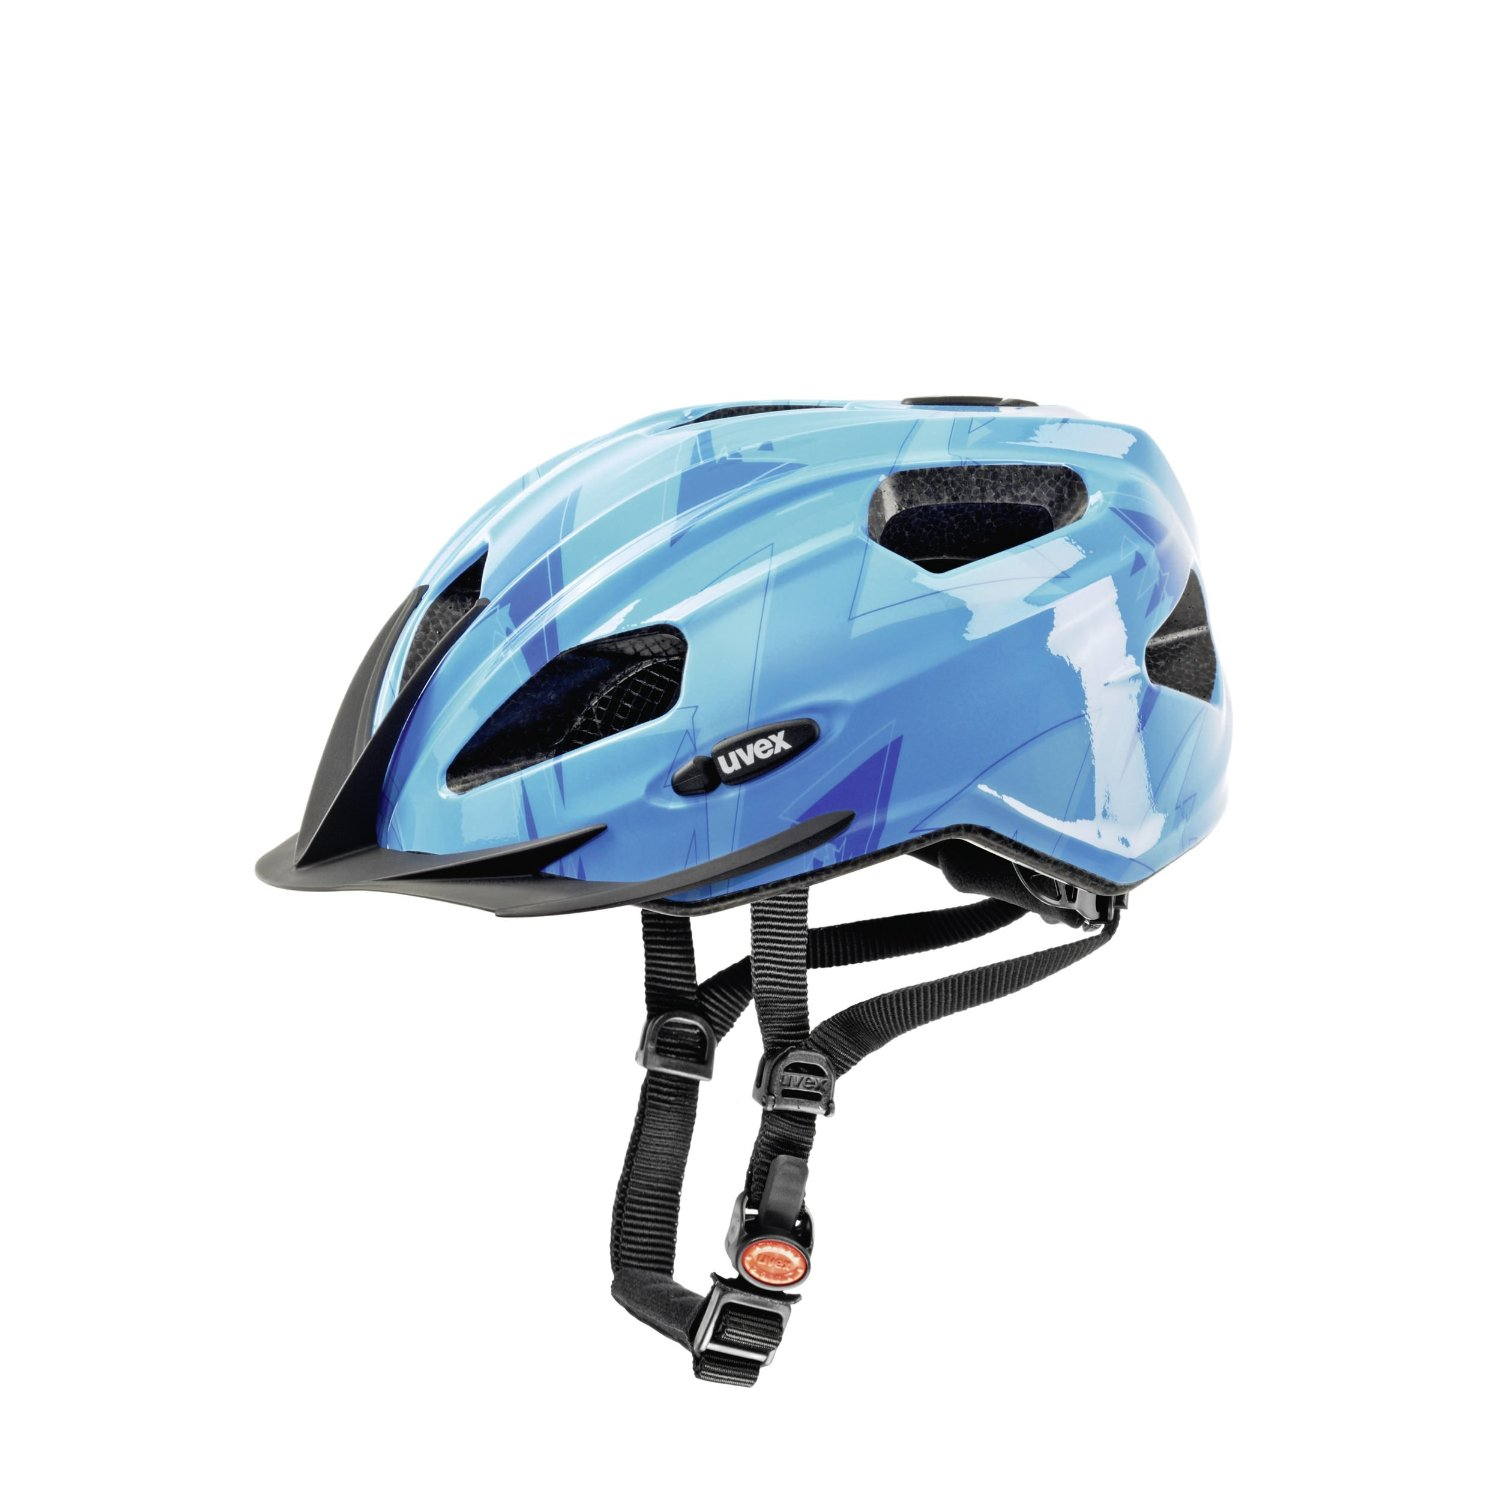 Uvex Kids & Youth Bicycle Helmets